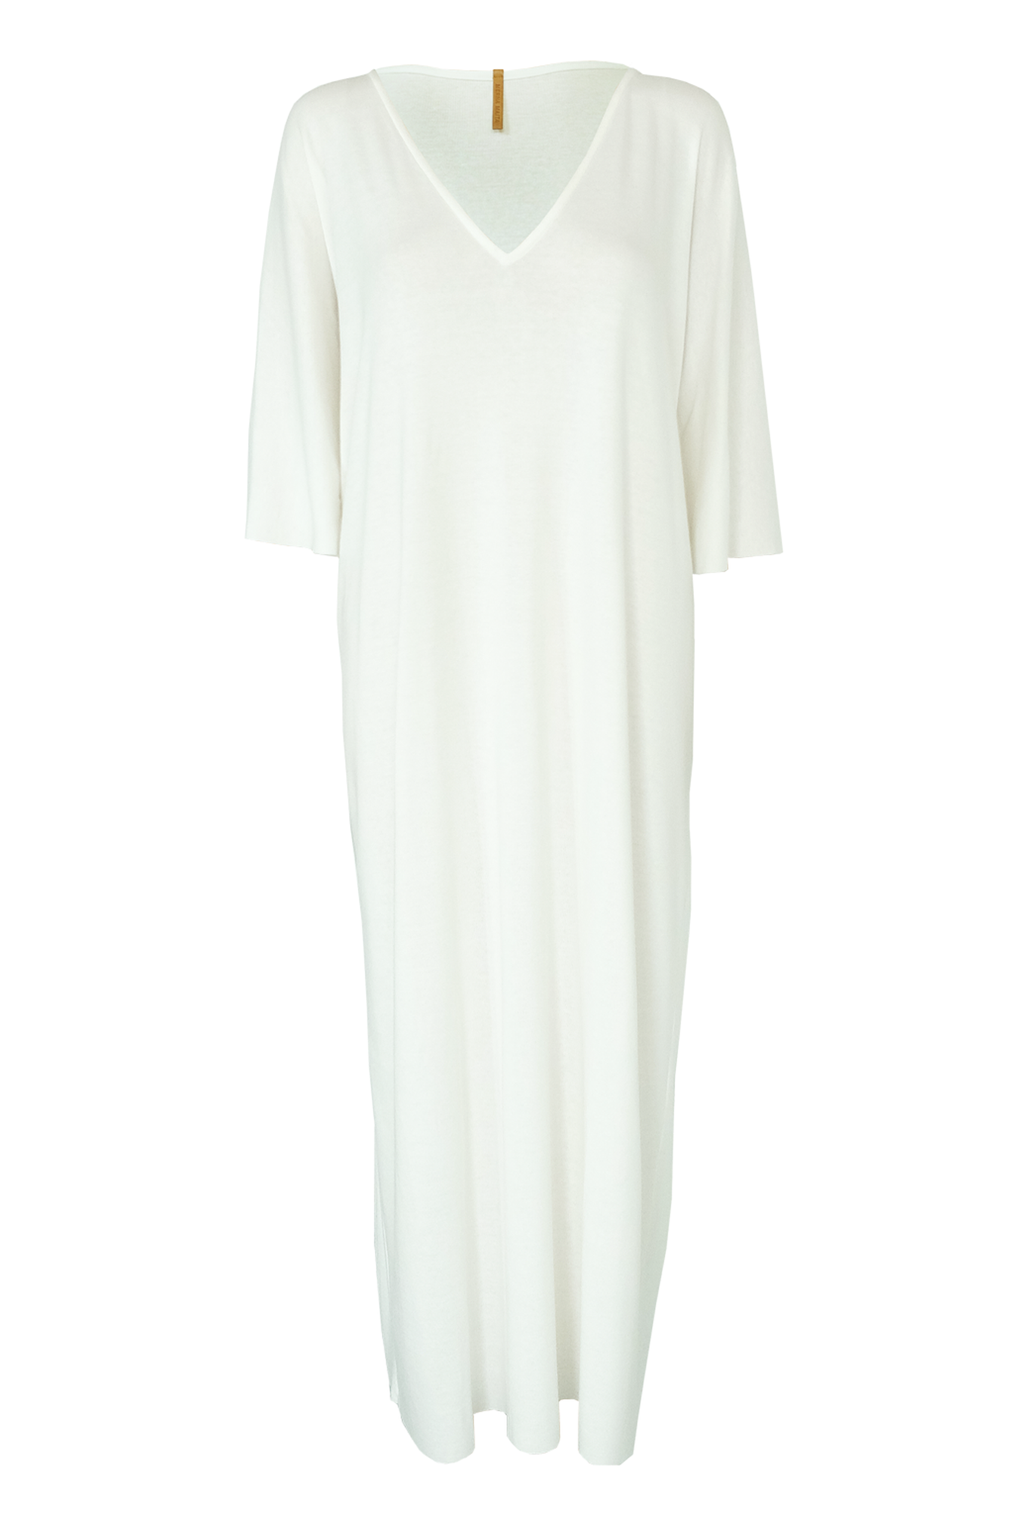 Big White Tee Caftan